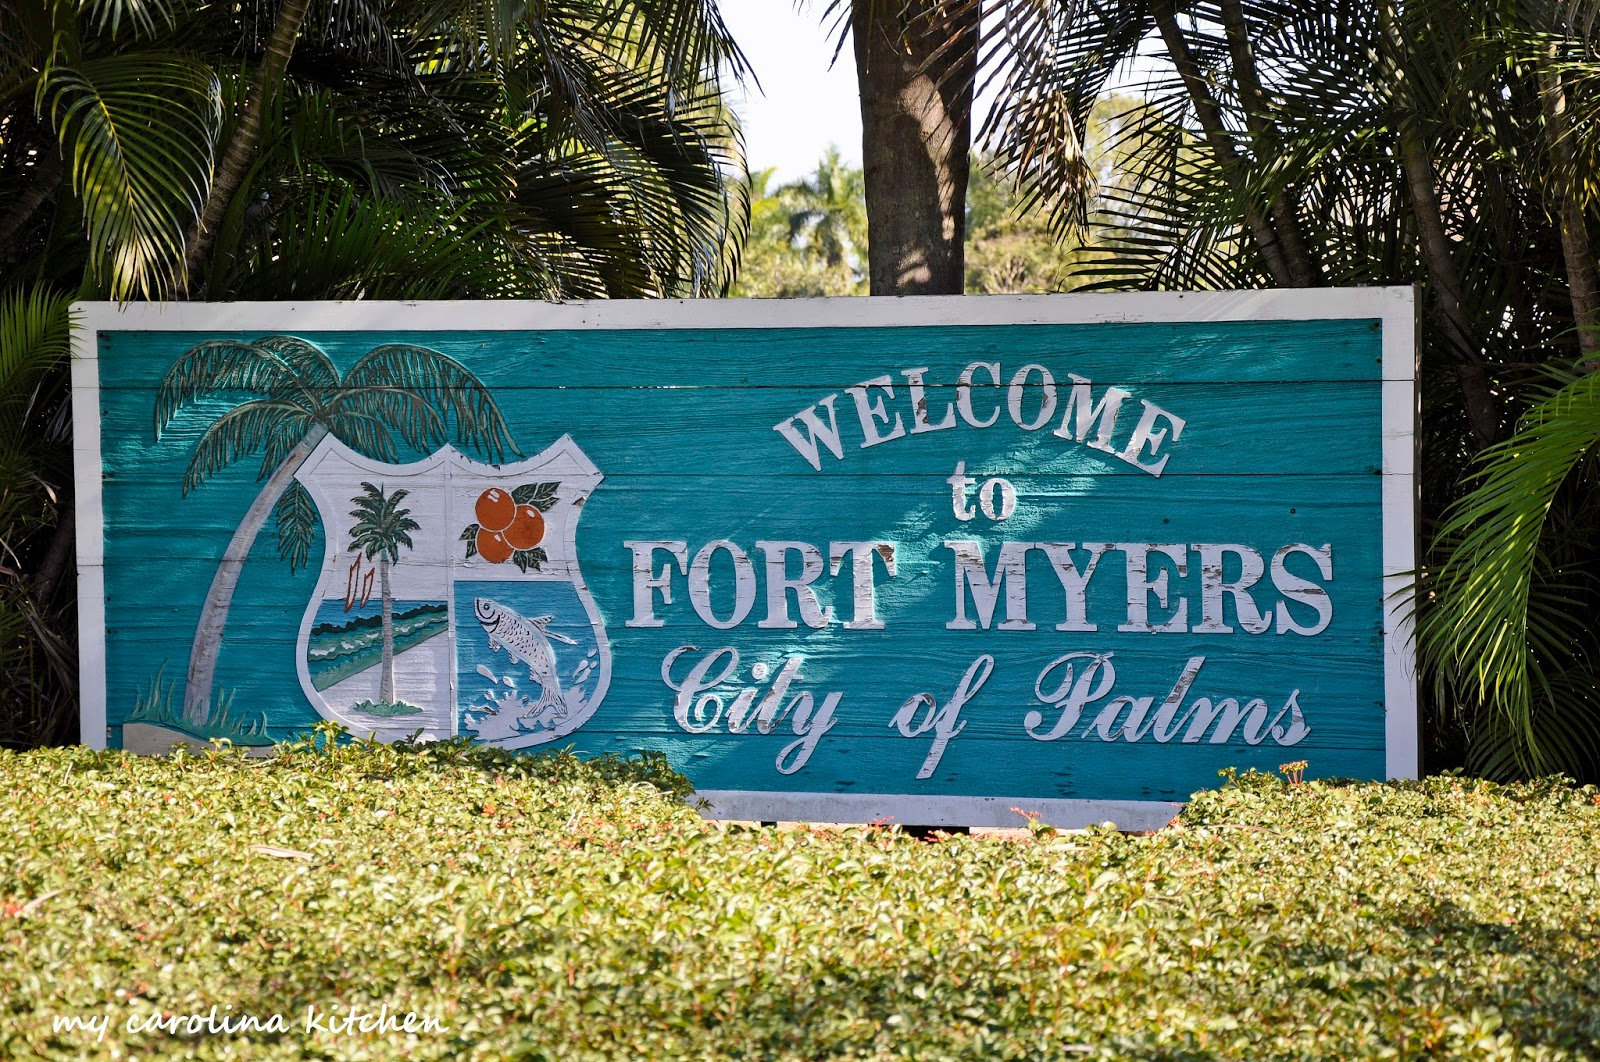 Service Call Fort Myers area